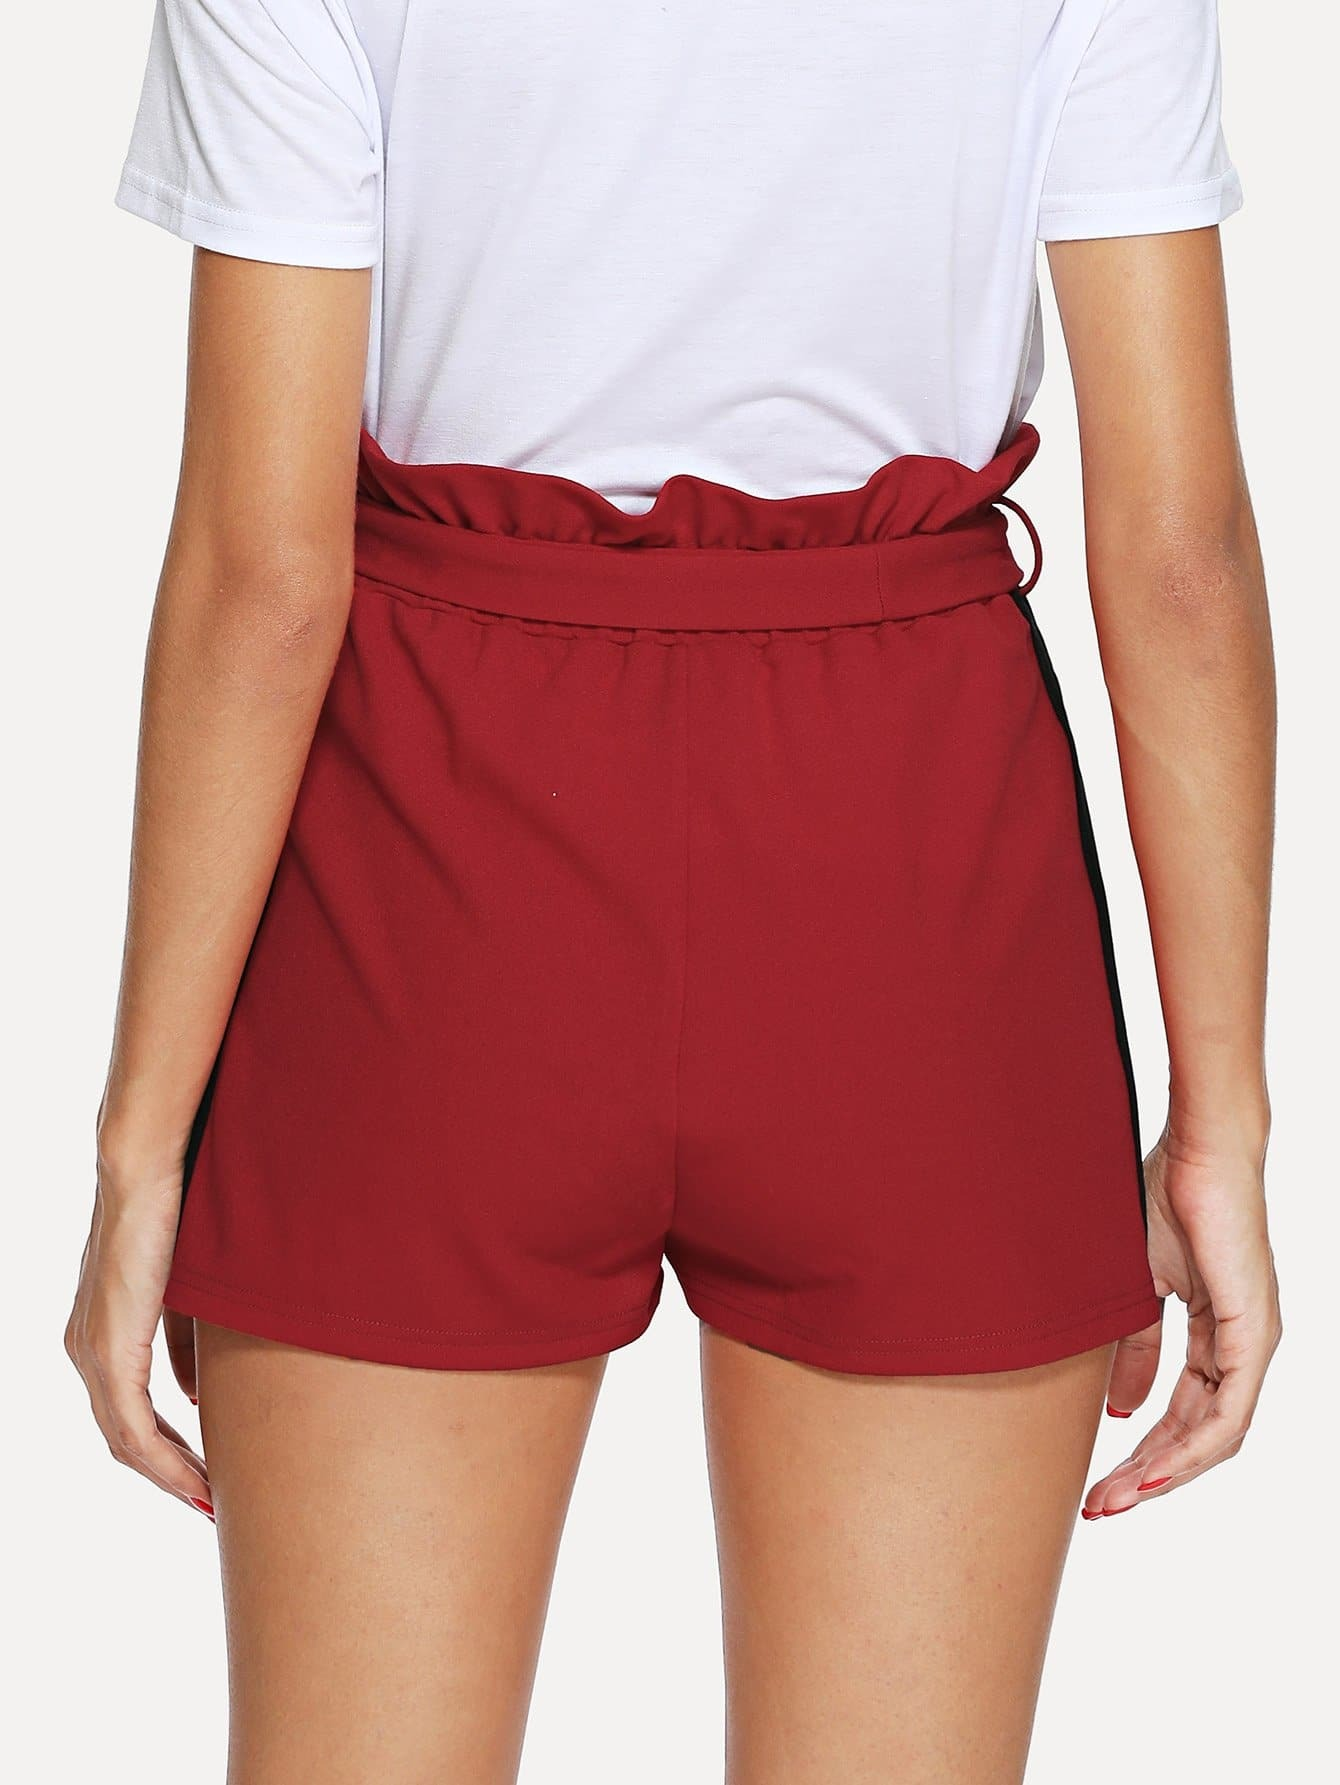 how to cut and sew shorts